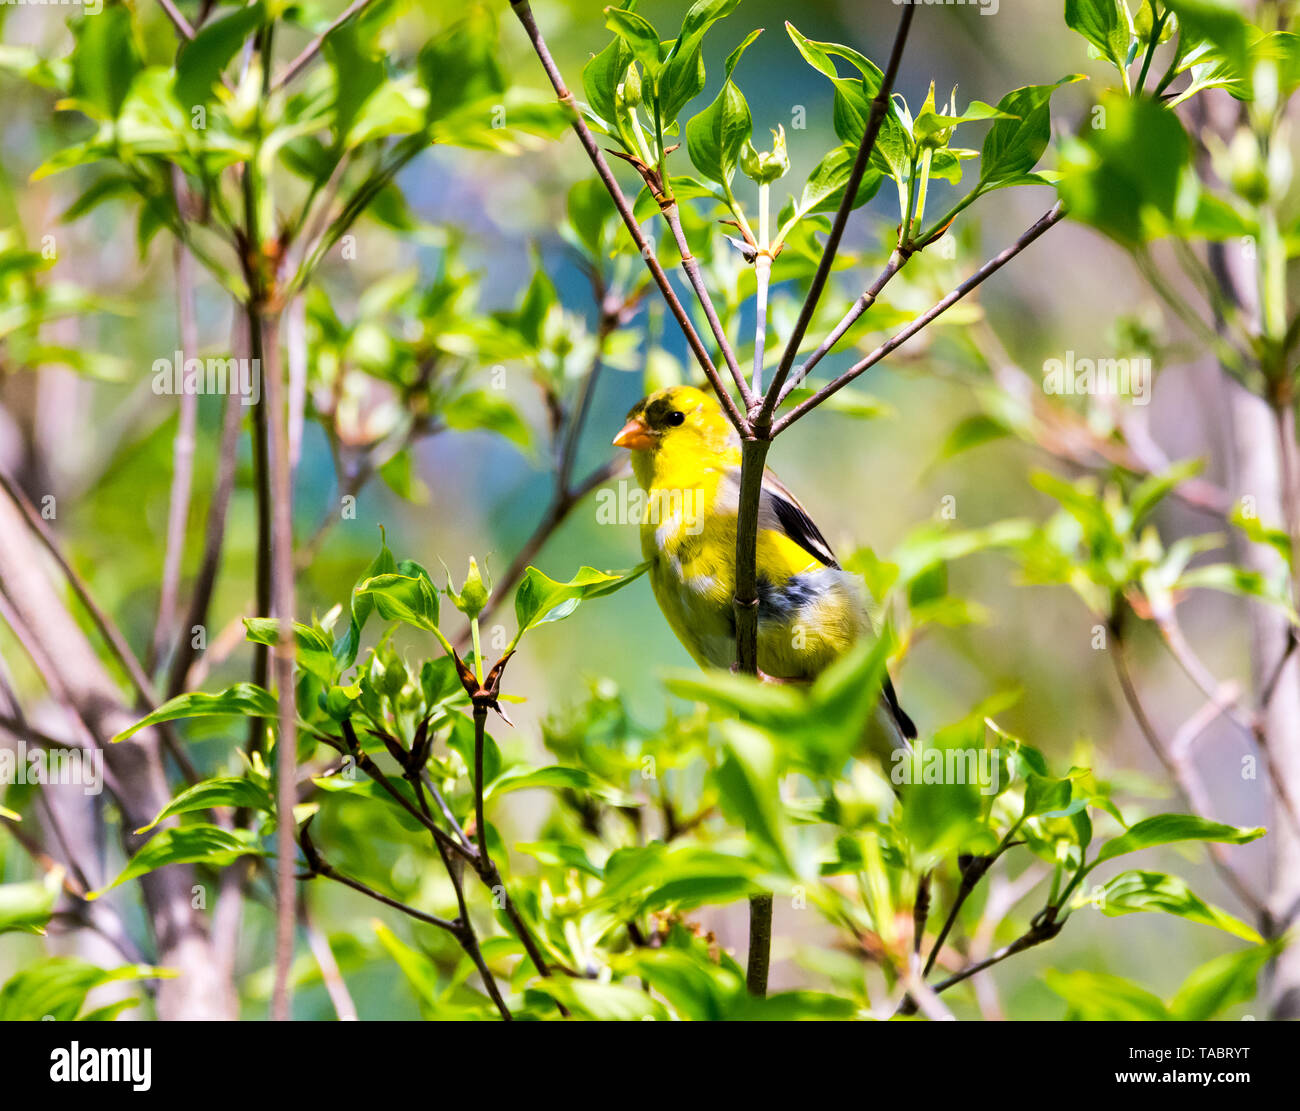 American Goldfinch sitting on a tree branch, surrounded by leaves, in the backyard. - Stock Image